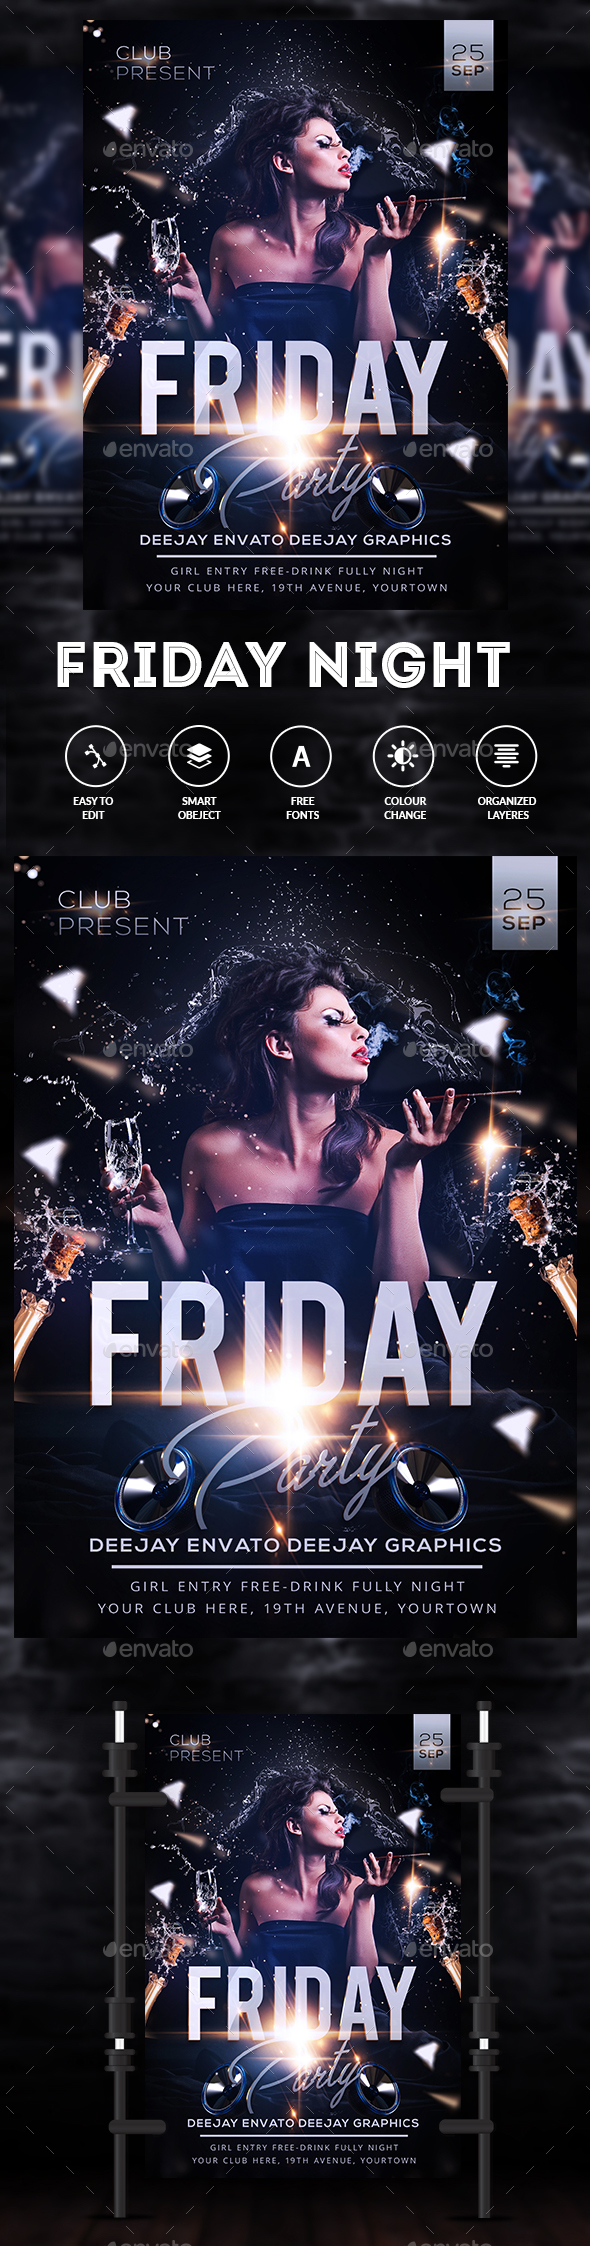 GraphicRiver Friday Night Flyer 20339422